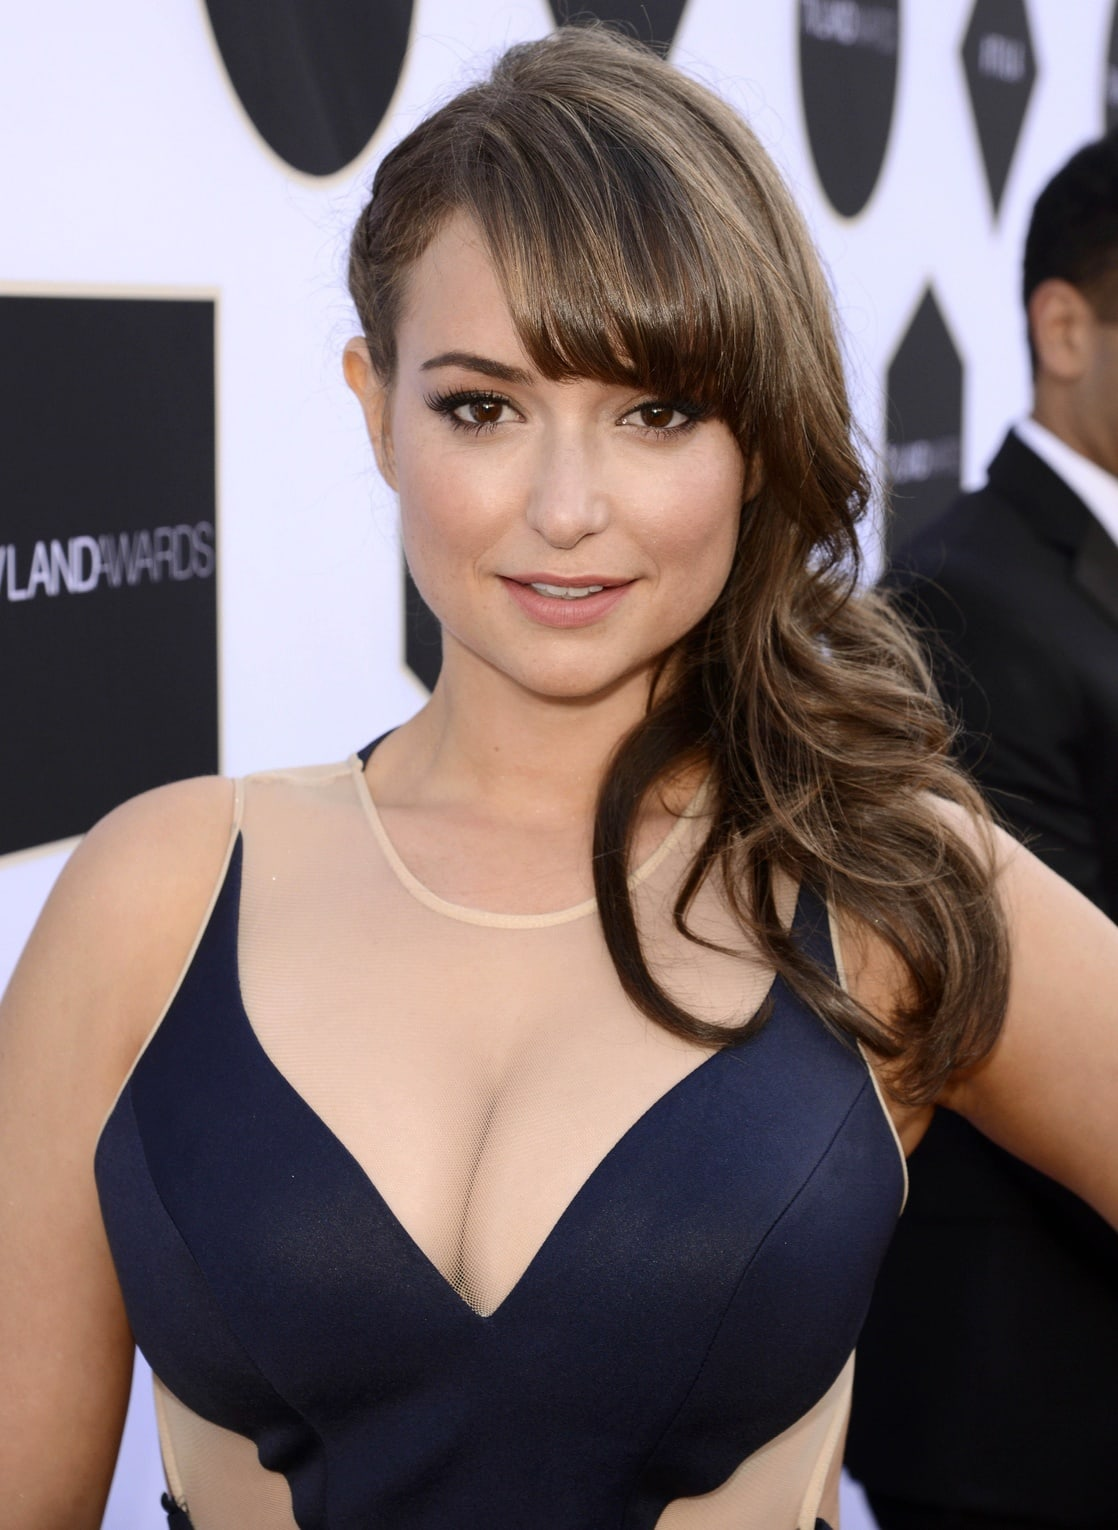 Milana Vayntrub hot women